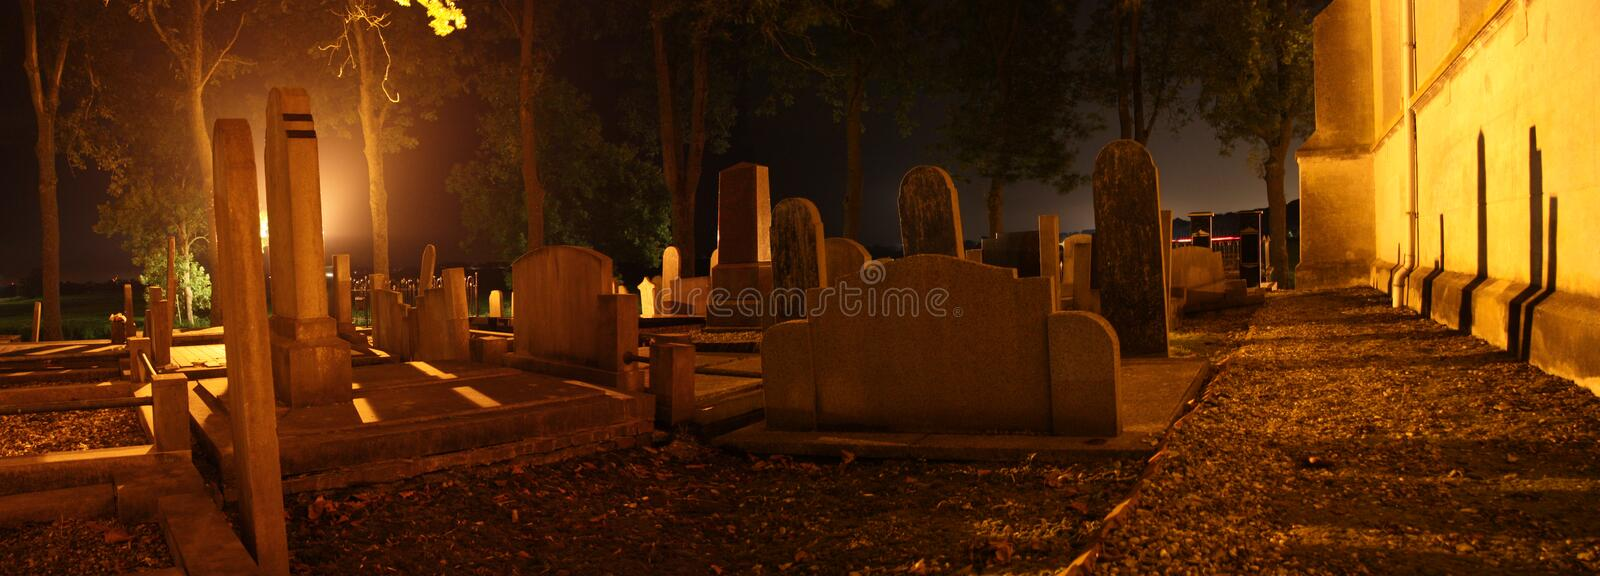 Headstones in graveyard. Headstone in Graveyard at night stock photography